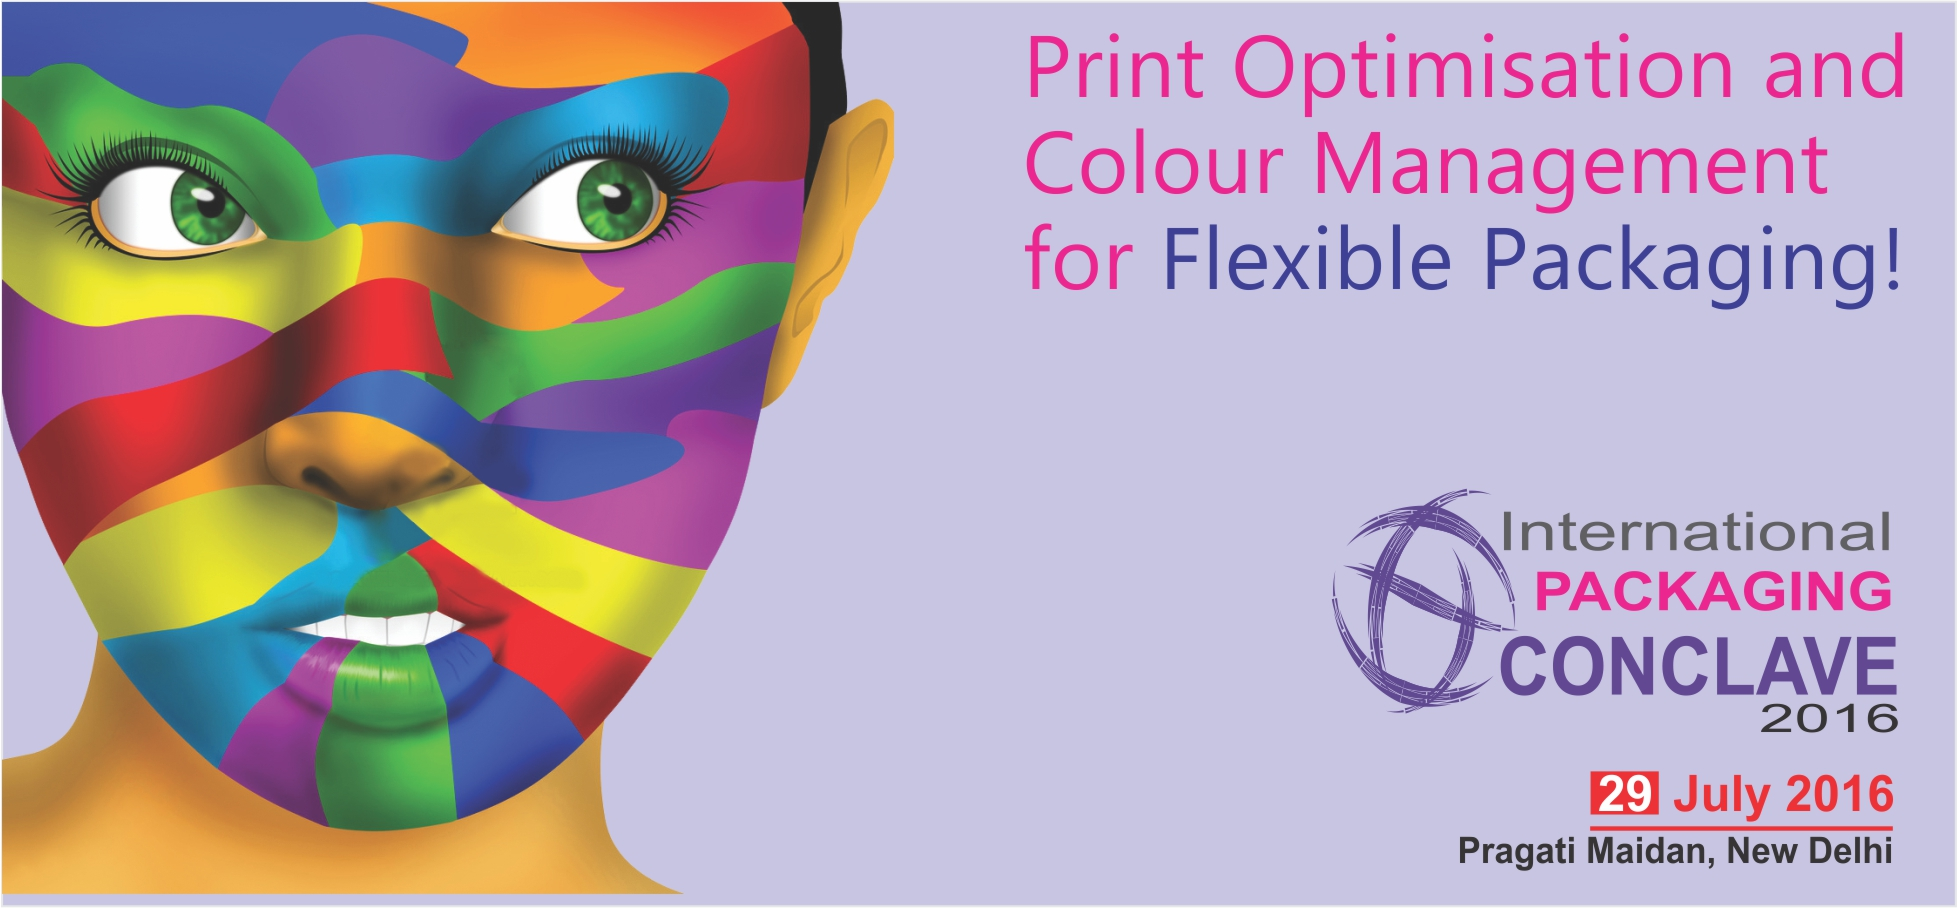 International Packaging Conclave to Focus on Print Optimisation & Colour Management for Flexible Packaging